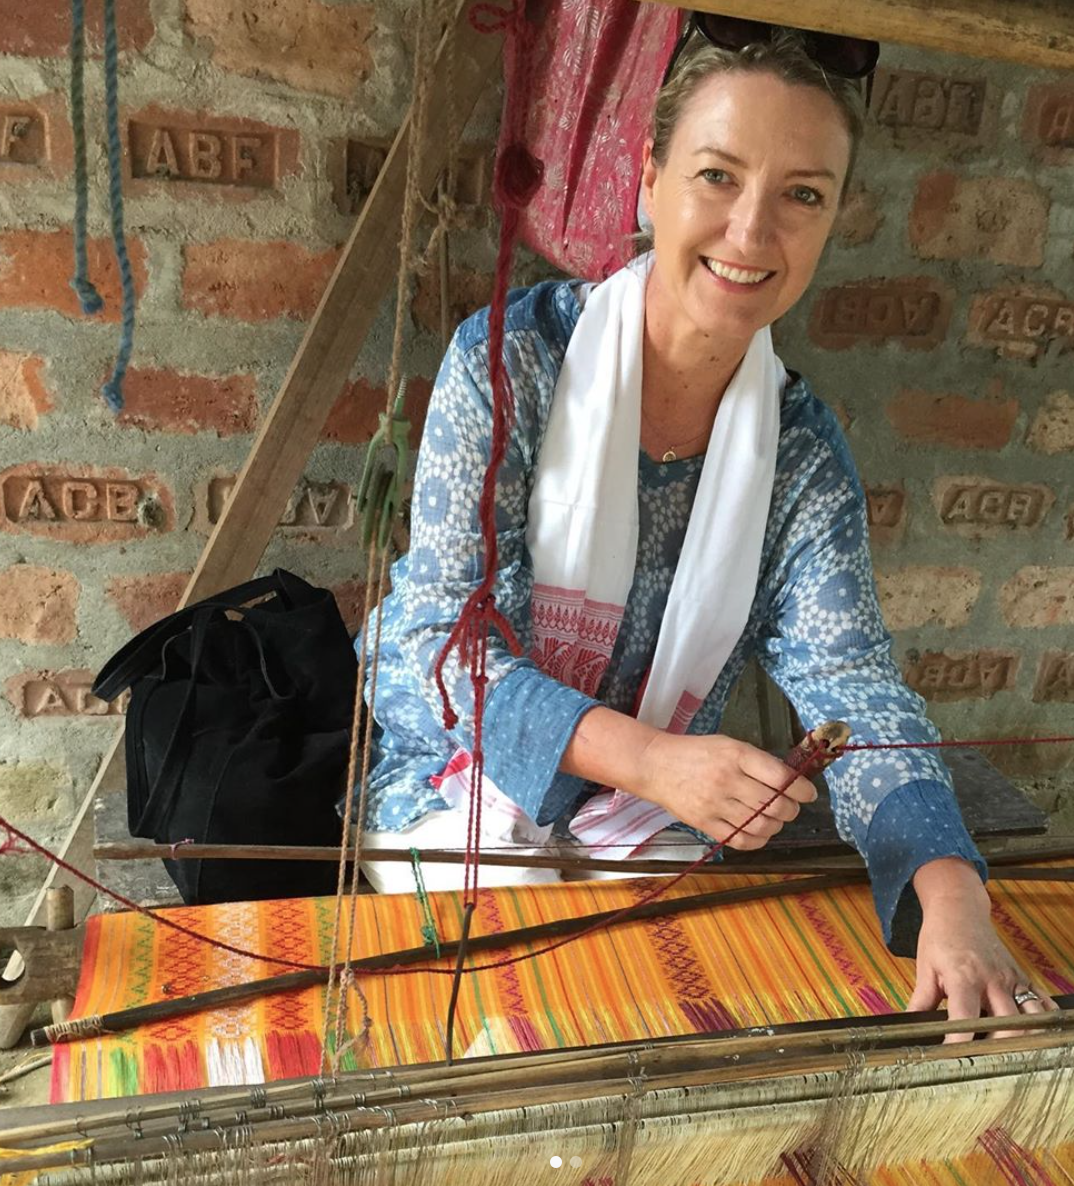 """We want to encourage people to embrace the concept of co-creation and respecting the cultural integrity of traditional craft techniques. The artisans sector intersects with issues around the environment, social justice and our global diversity."" -"